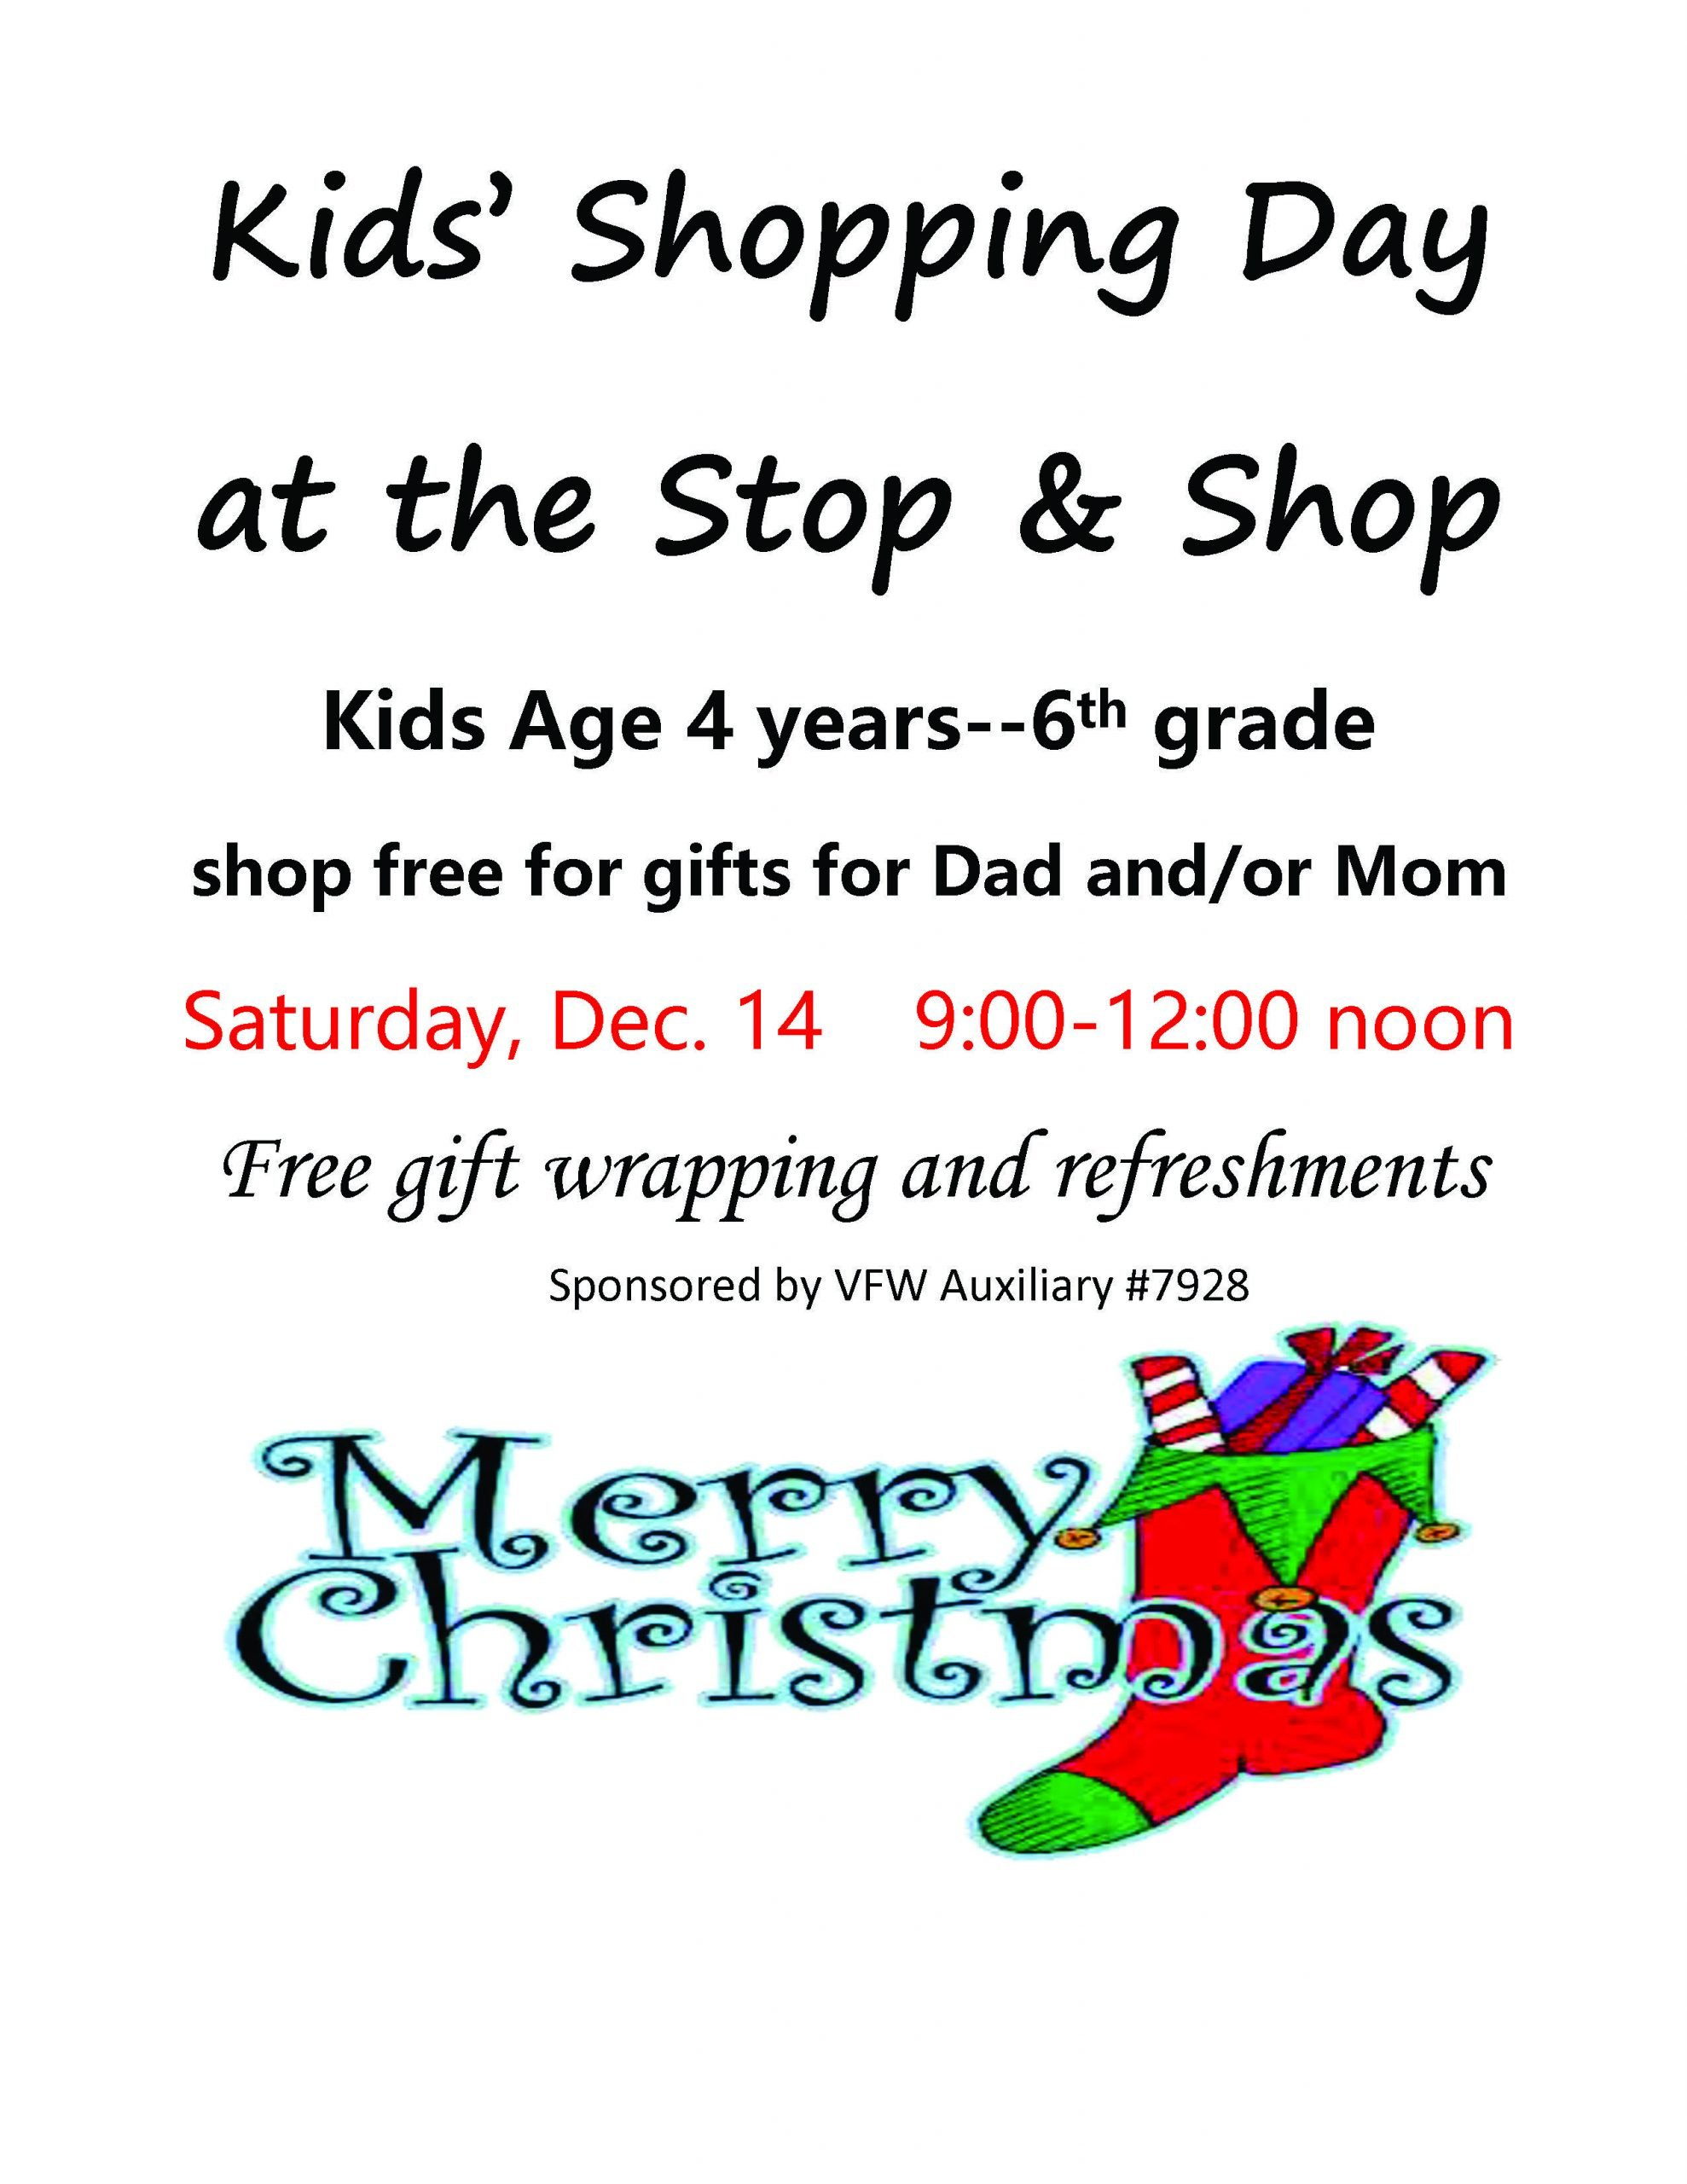 Kids Shopping Day December 14, 2019